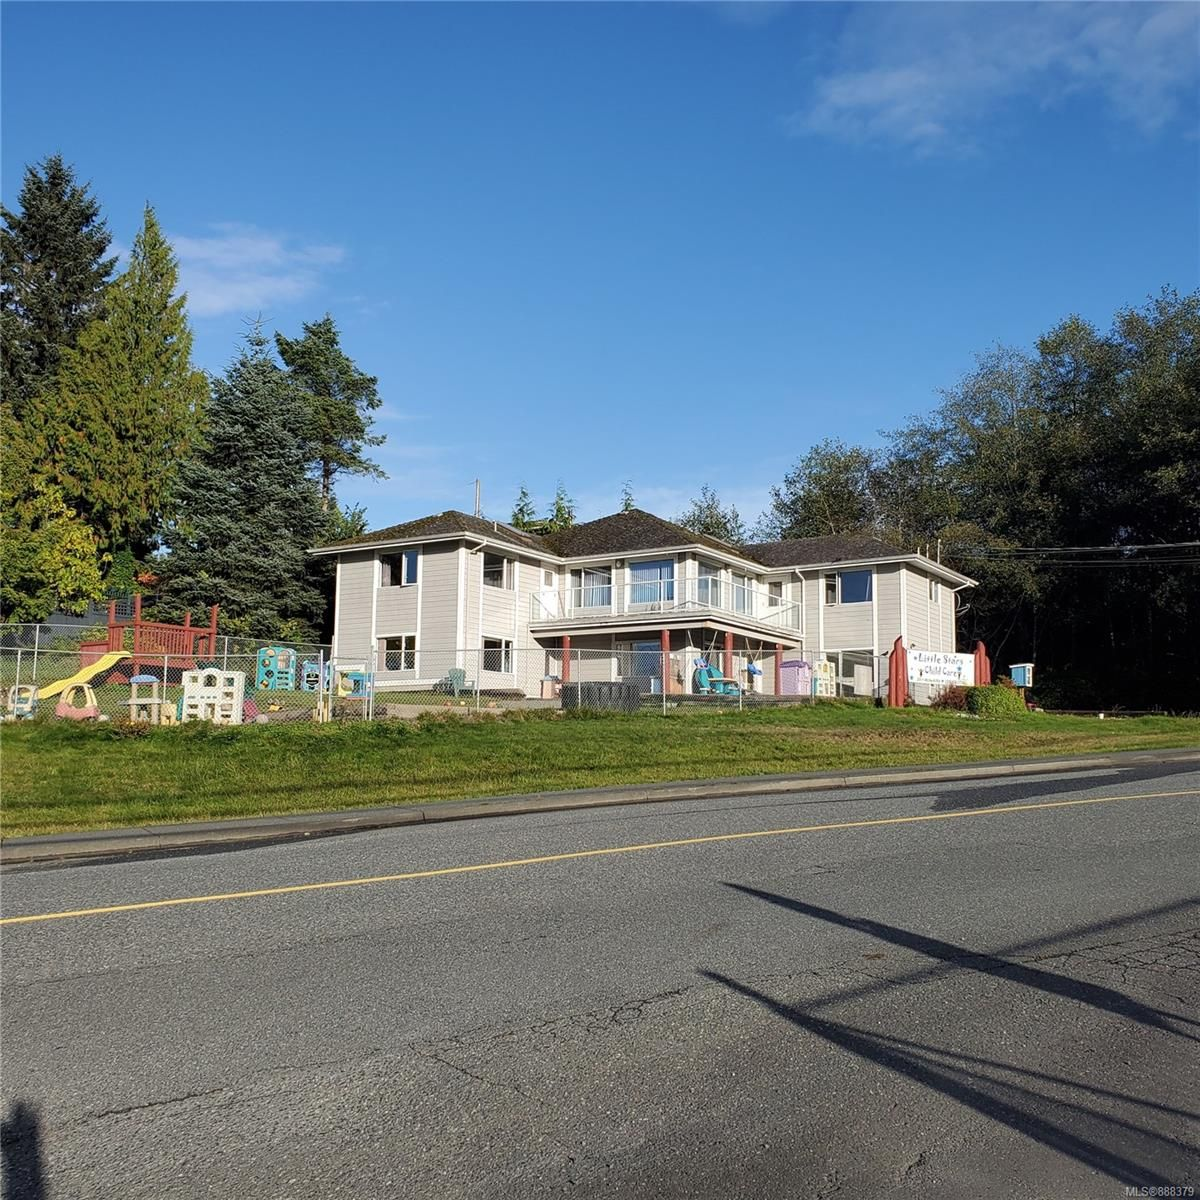 Main Photo: 2011 McNeill Rd in Port McNeill: NI Port McNeill Mixed Use for sale (North Island)  : MLS®# 888379